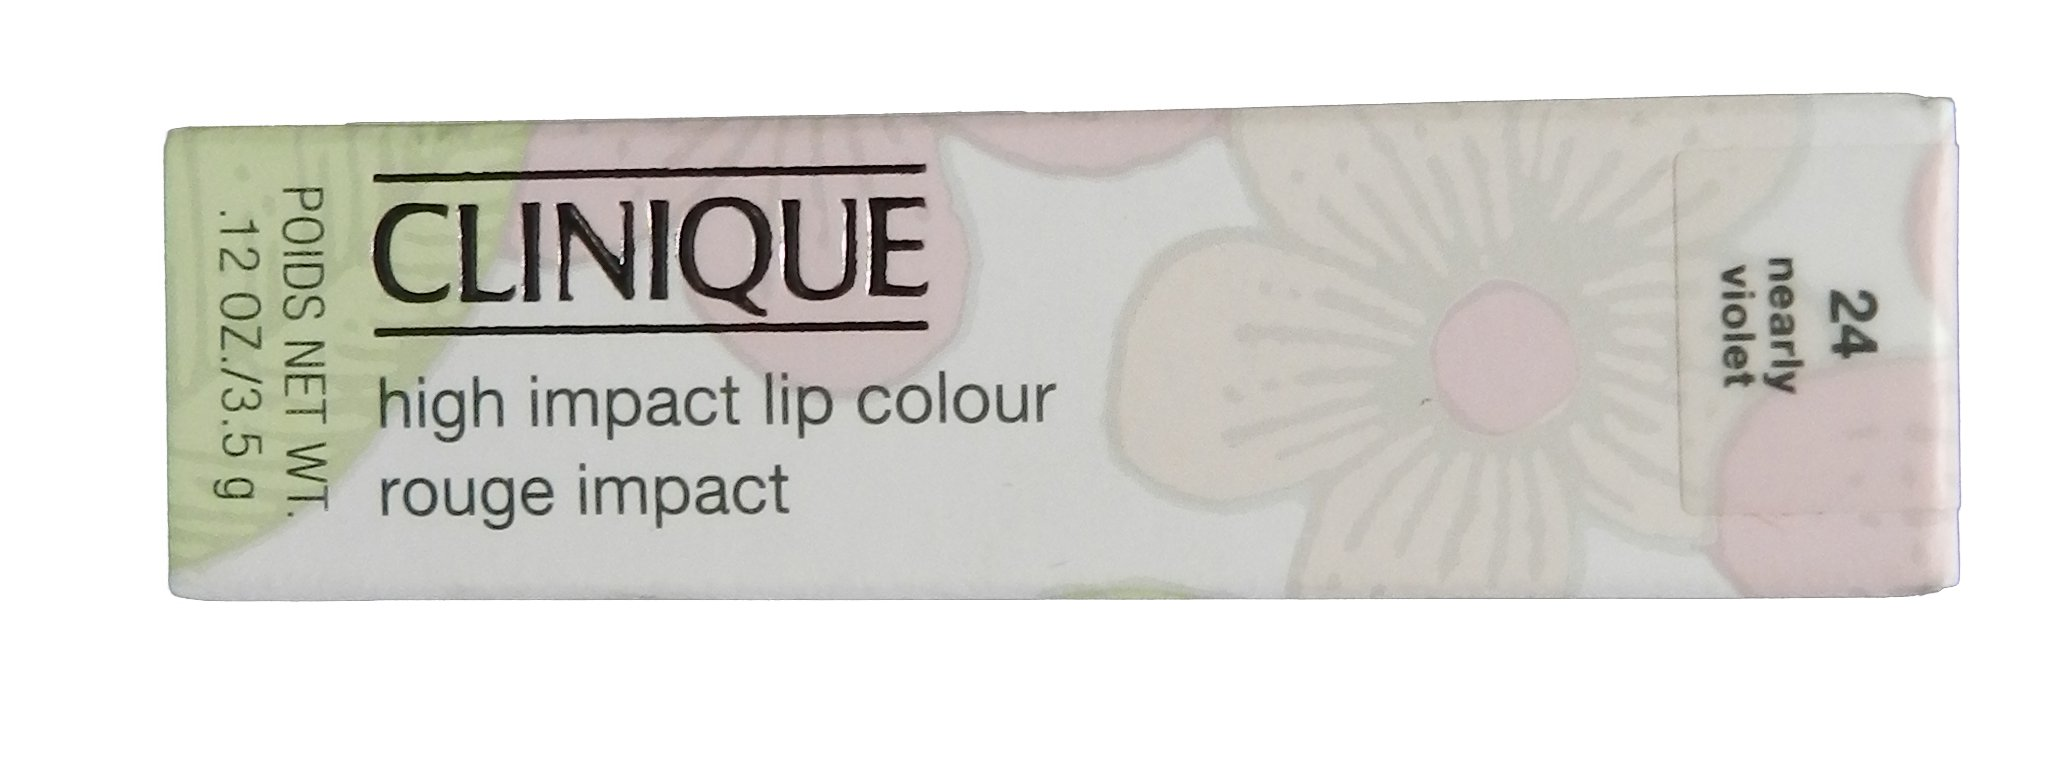 Clinique High Impact Lip Color, Nearly Violet, 0.12 Ounce